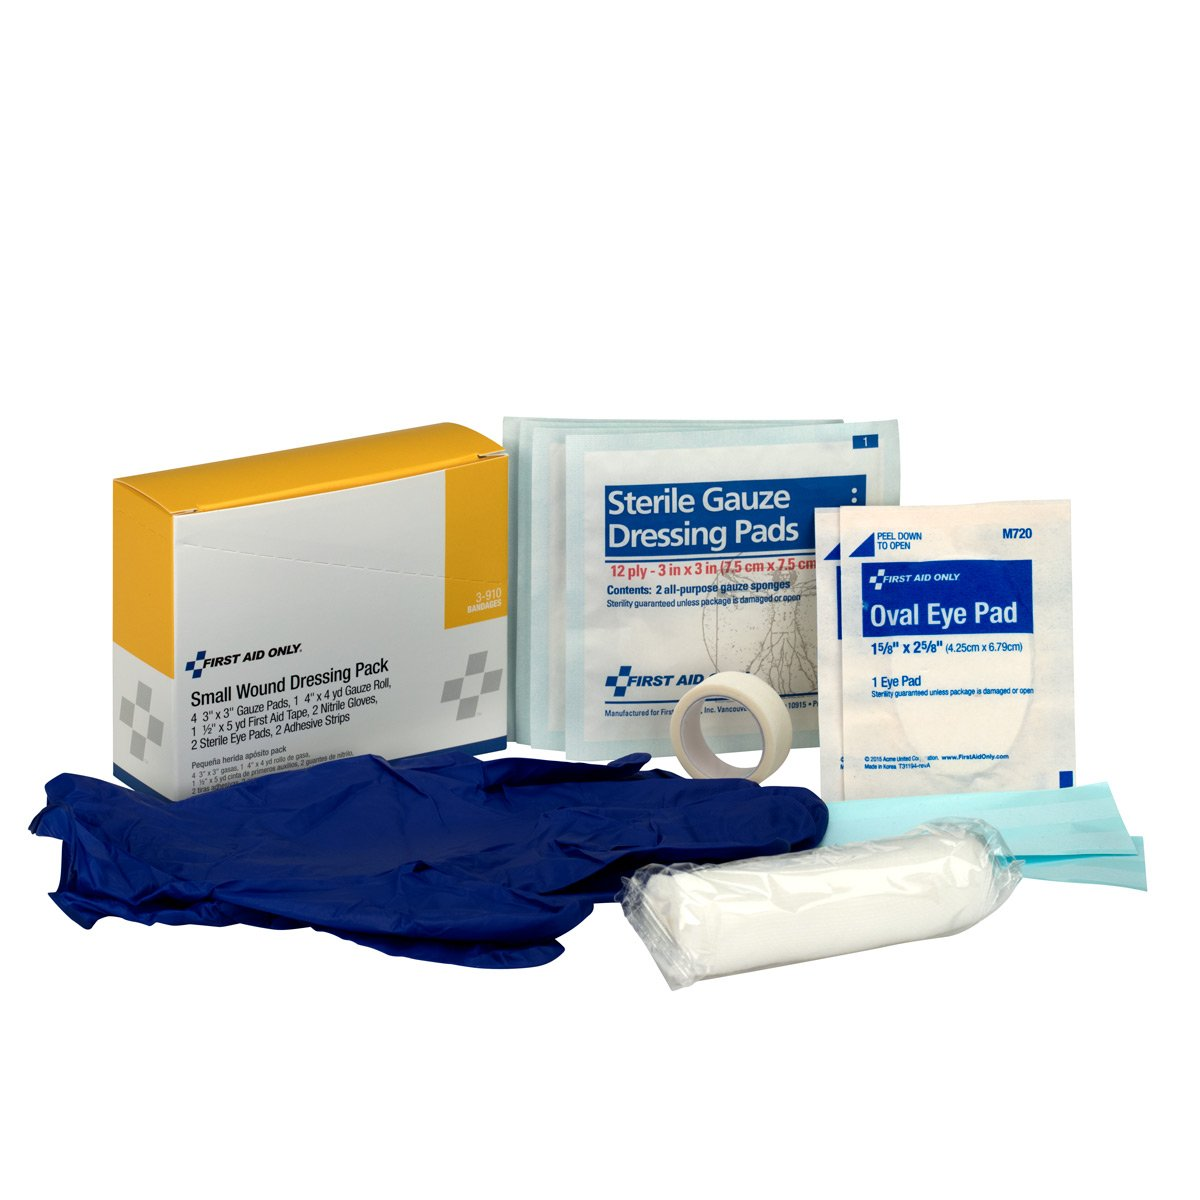 First Aid Only 3-910 8 Piece Small Wound Dressing Kit